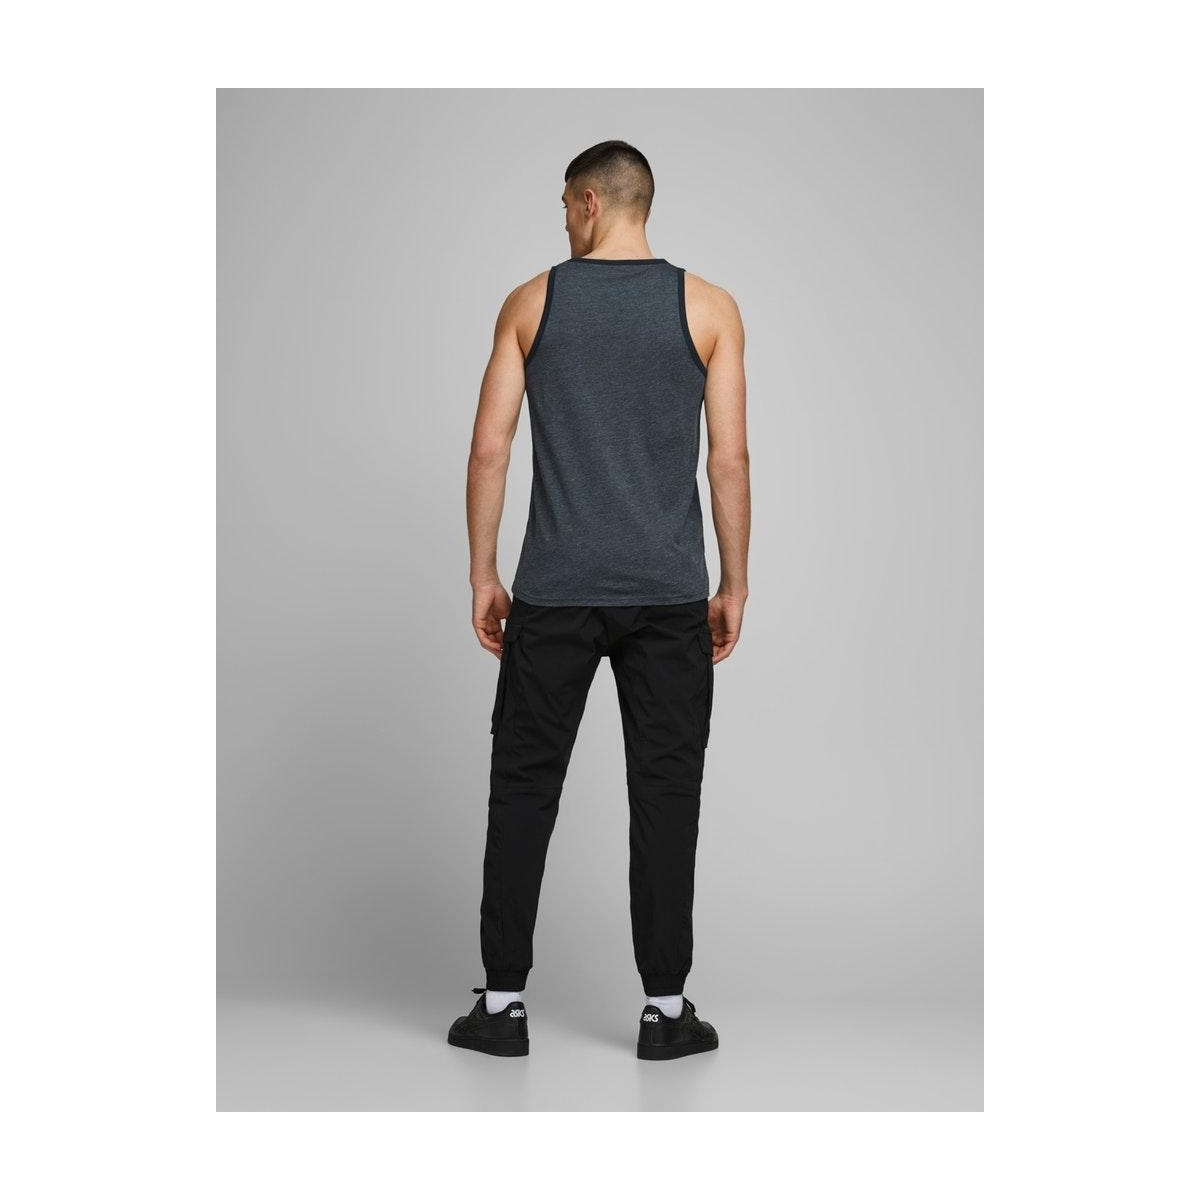 jcoicon tank top 12171428 jack & jones t-shirt sky captain/slim